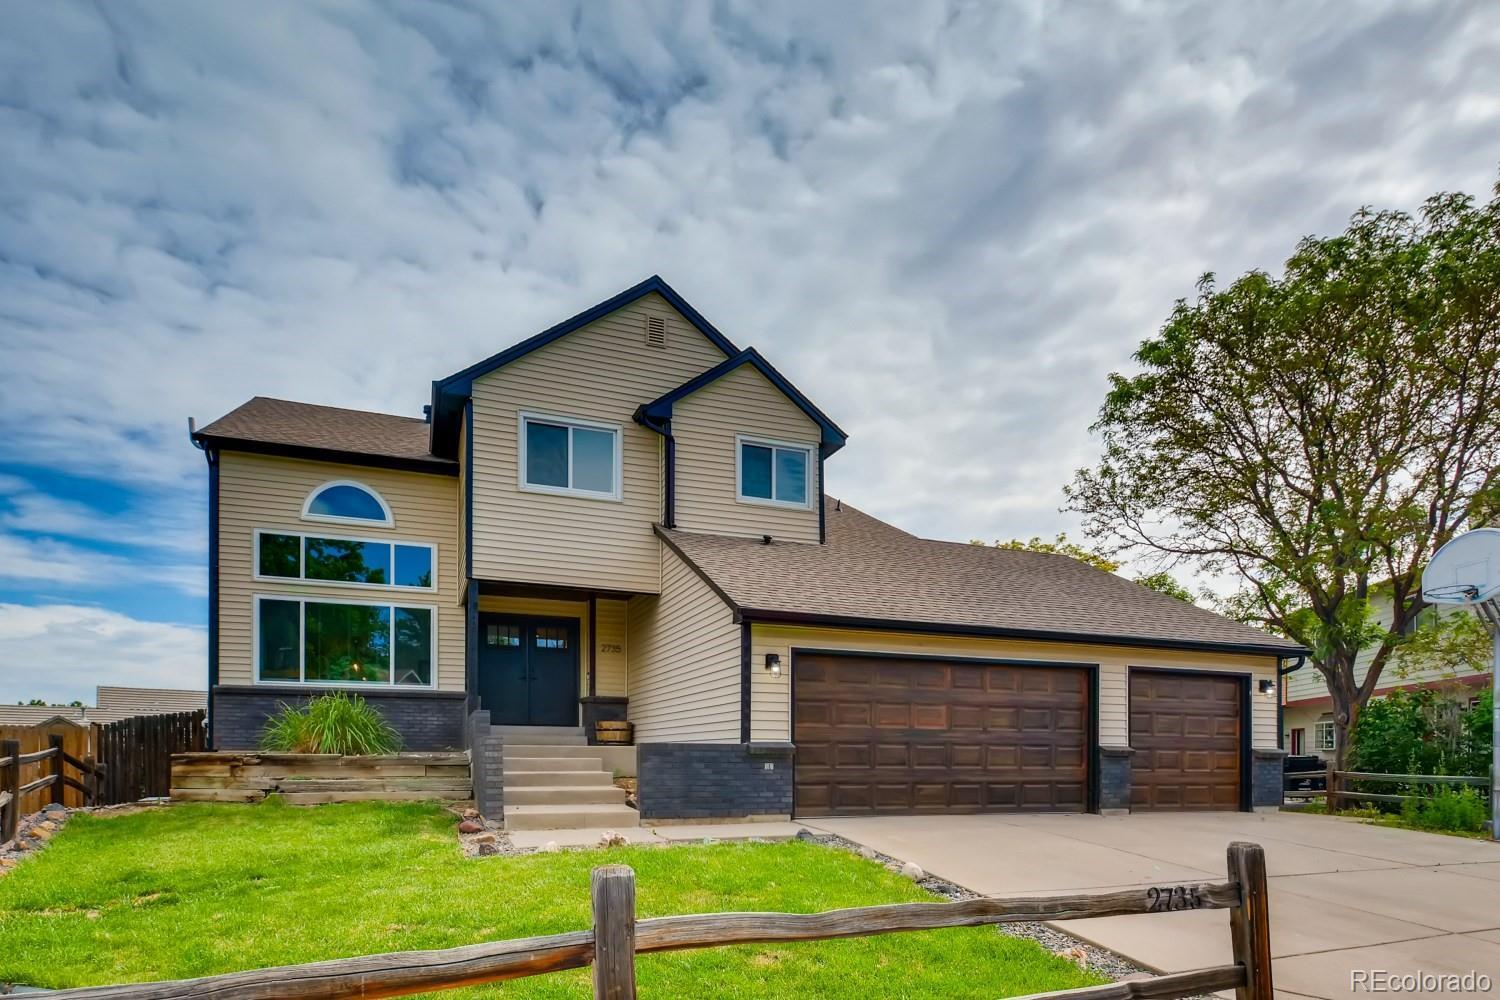 2735 W 106th Circle, Westminster, CO 80234 - #: 4620189